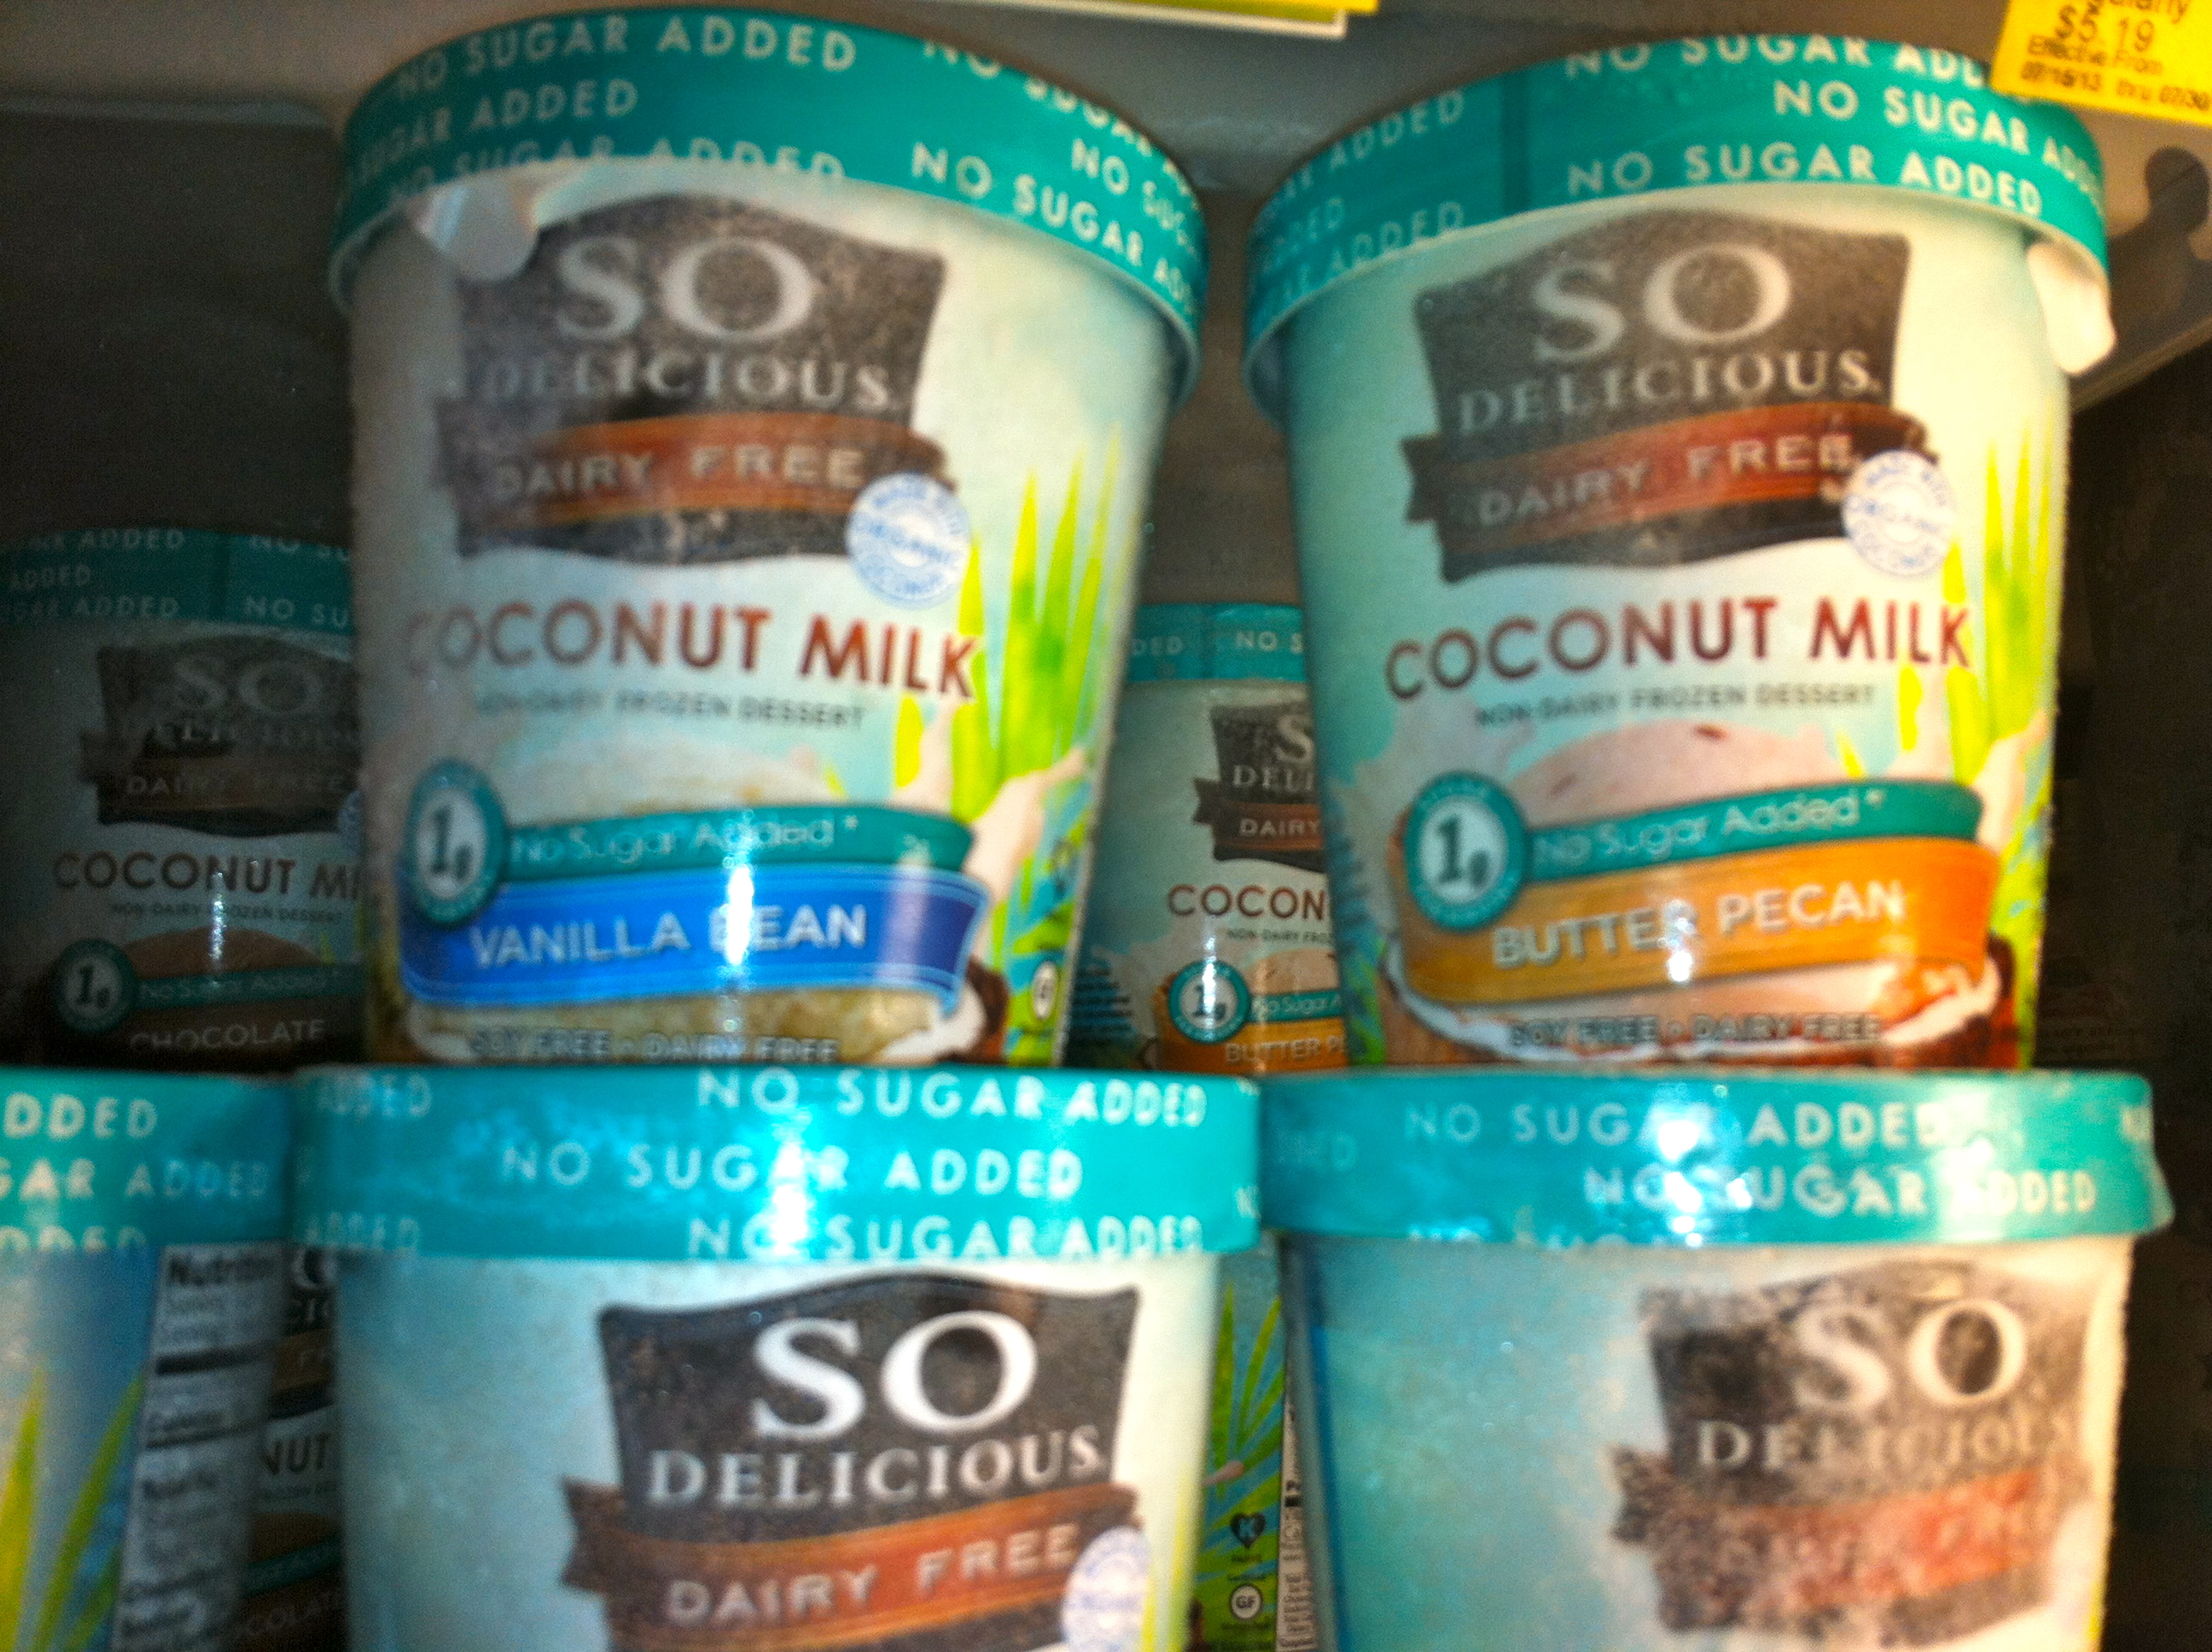 So delicious coconut milk ice-cream is dairy free and they have no added sugar varieties that are lower in calories than the regular varieties and much higher in fibre.